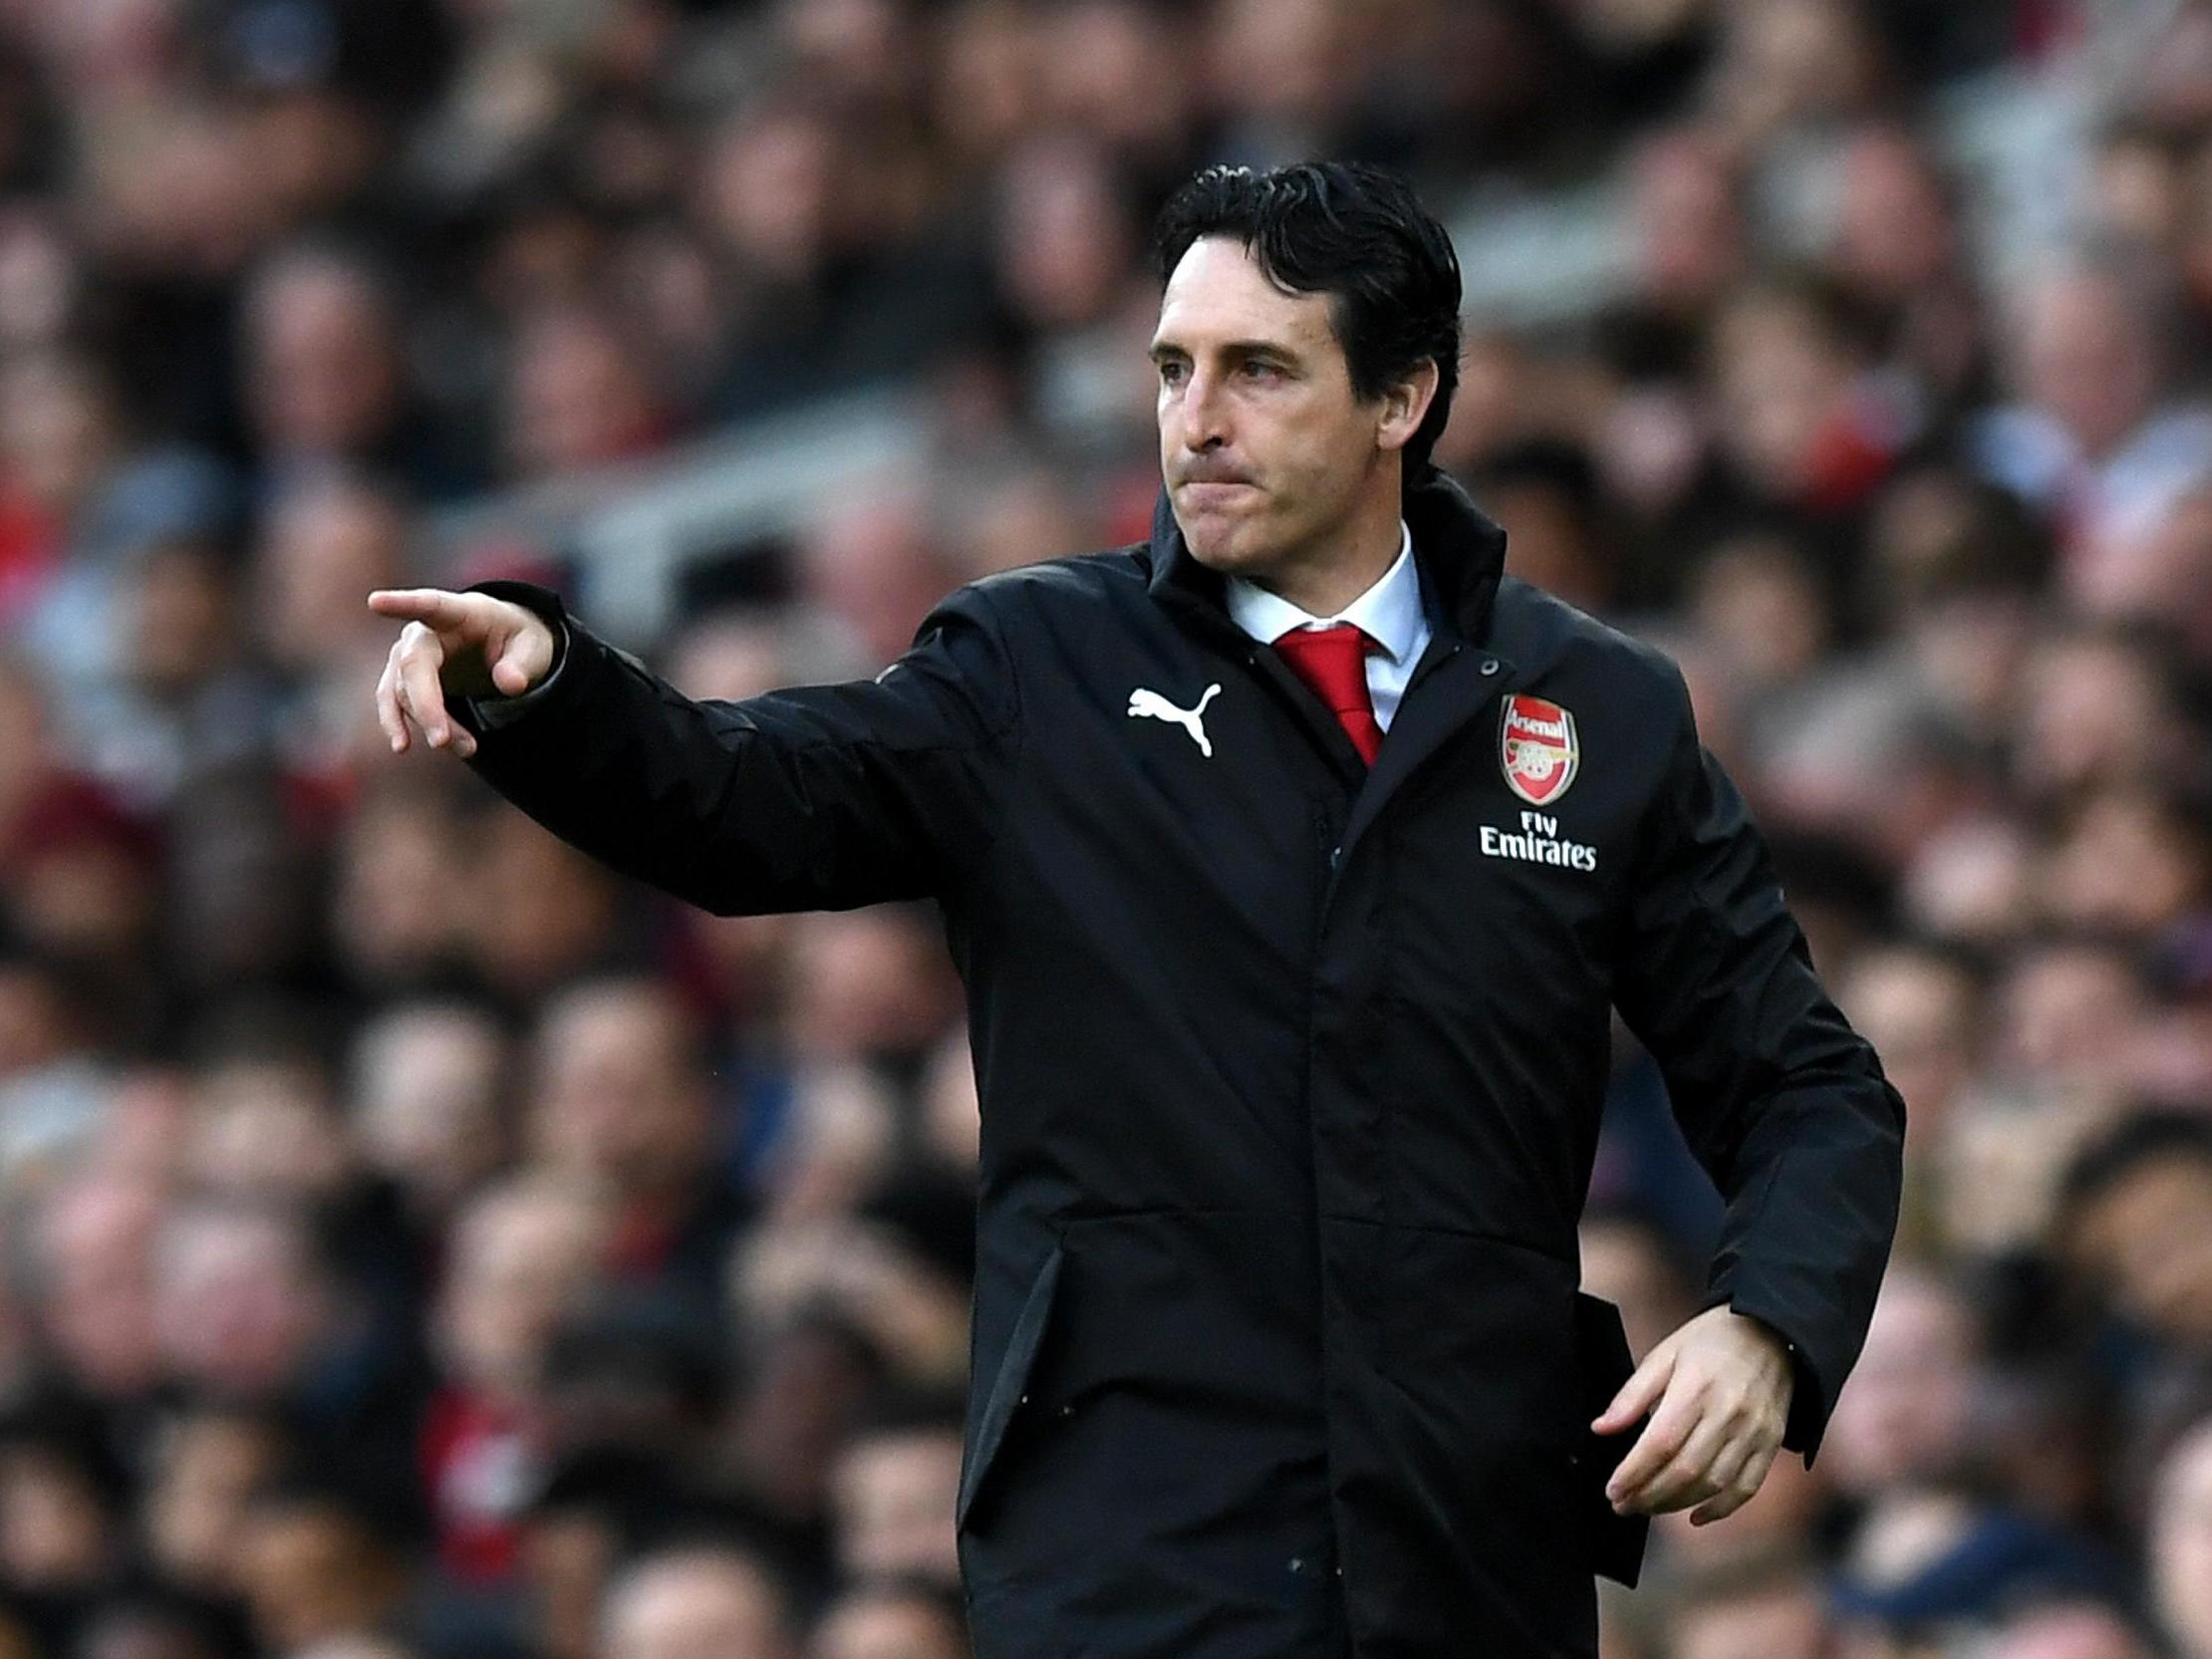 Emery takes full Arsenal squad to France to take on Rennes